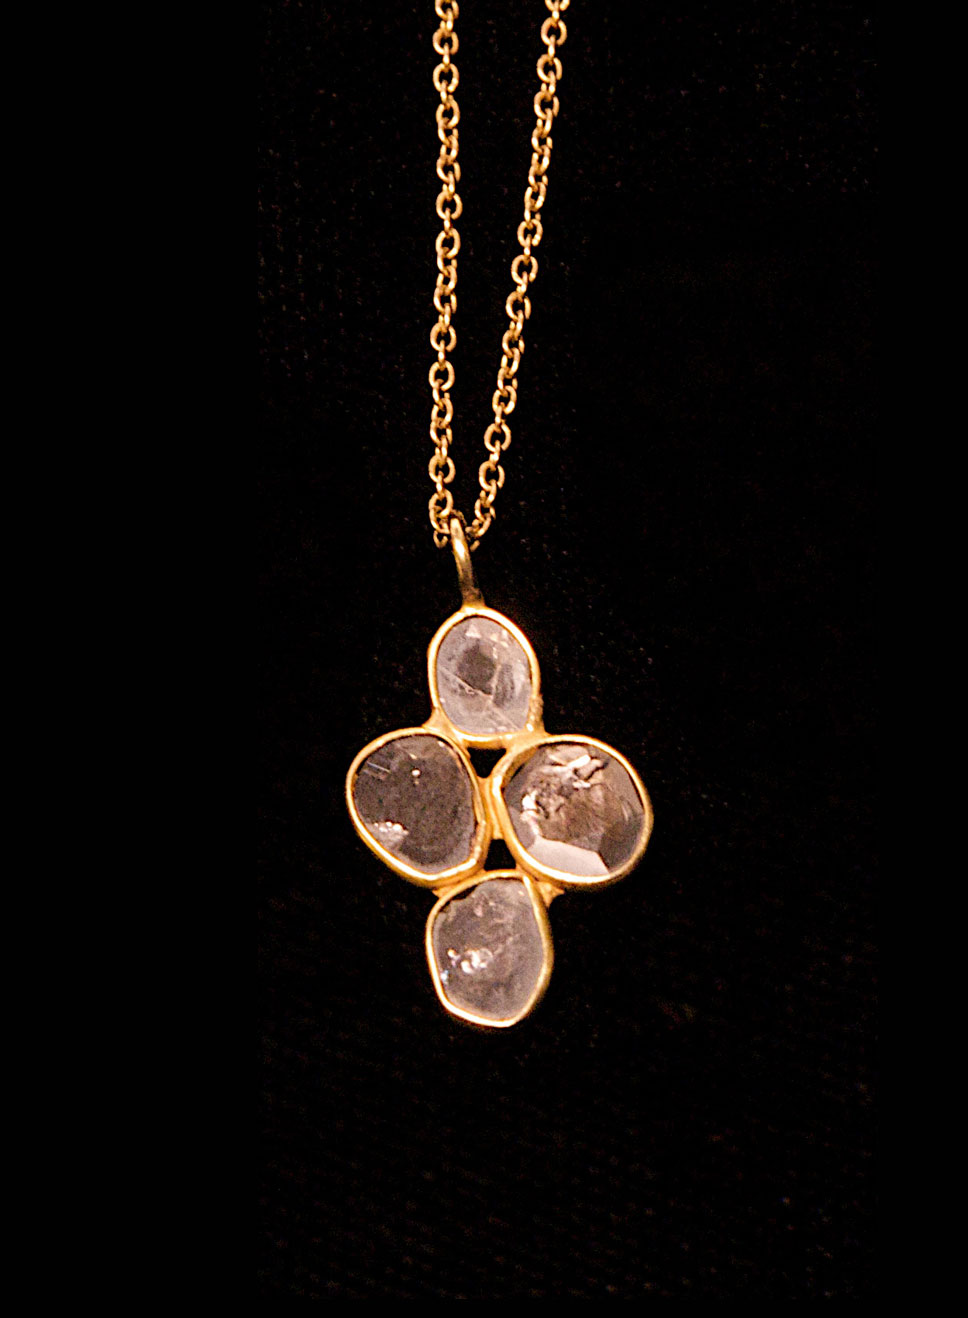 Polki diamond set in 22ct gold with an 18ct gold chain. Length of chain- 45cm. Pendant height- 2.5cm. Width- 2cm.